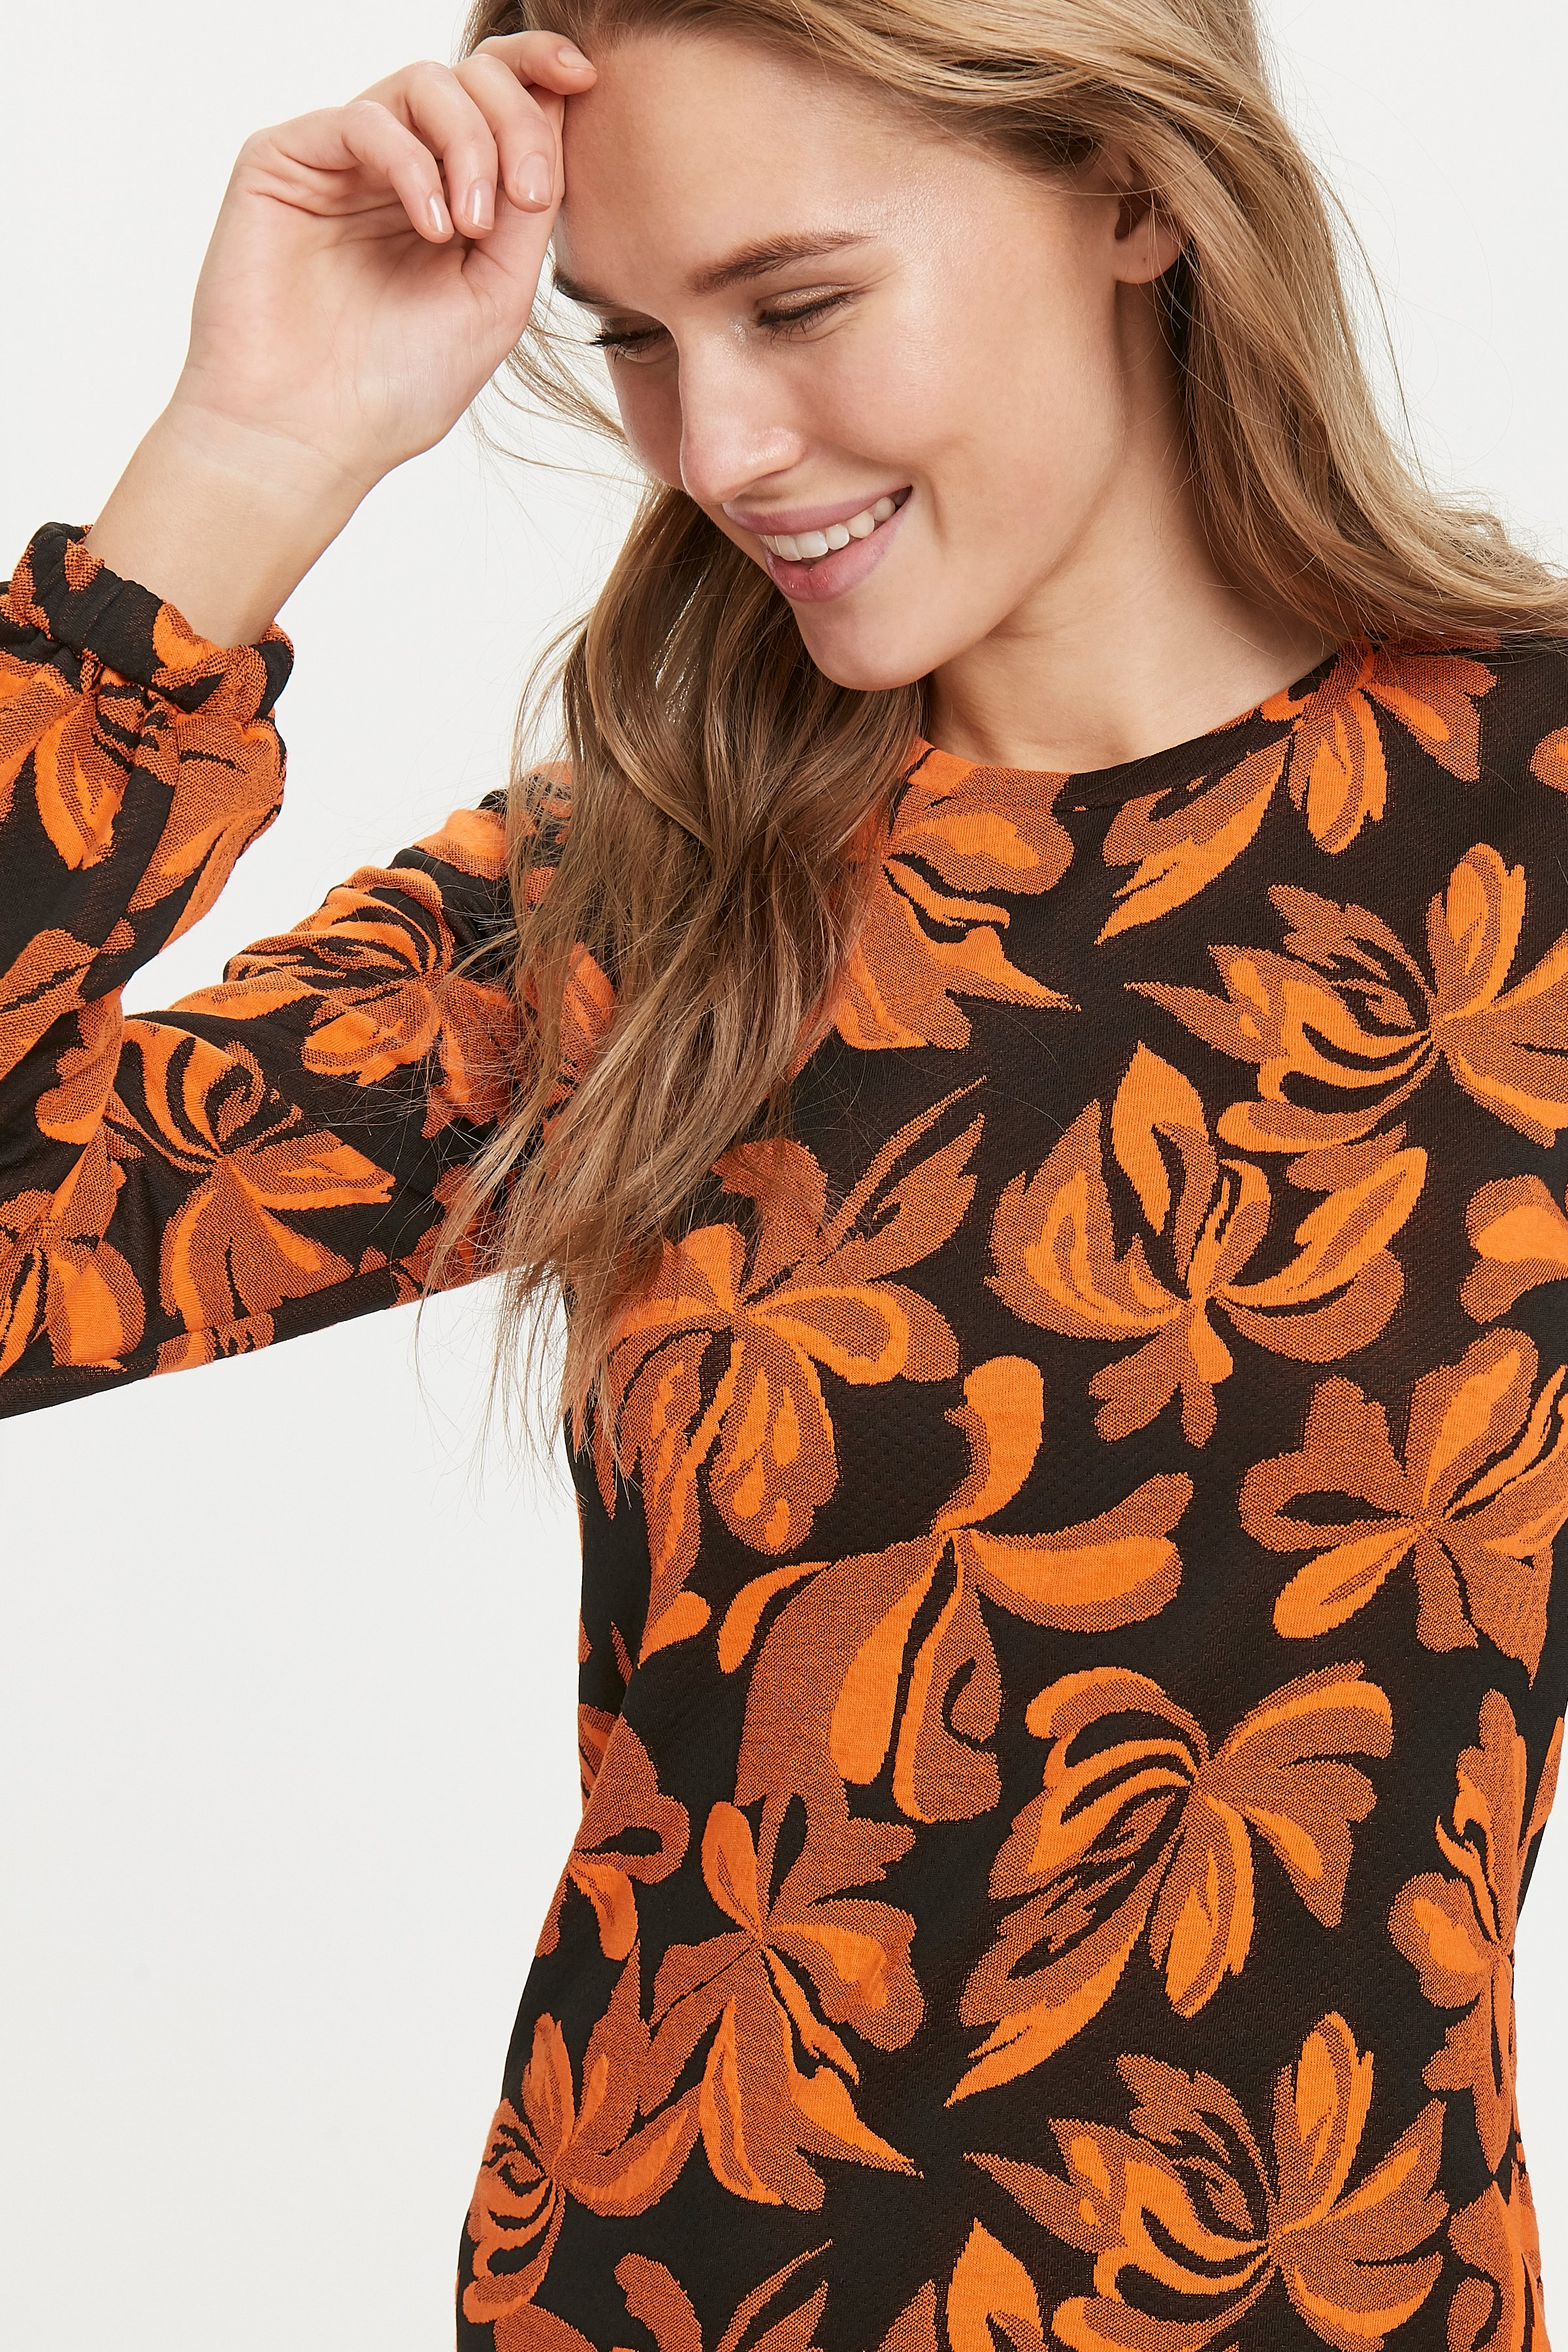 Tulip orange combi 1 Jerseykjole fra b.young – Køb Tulip orange combi 1 Jerseykjole fra str. XS-XL her